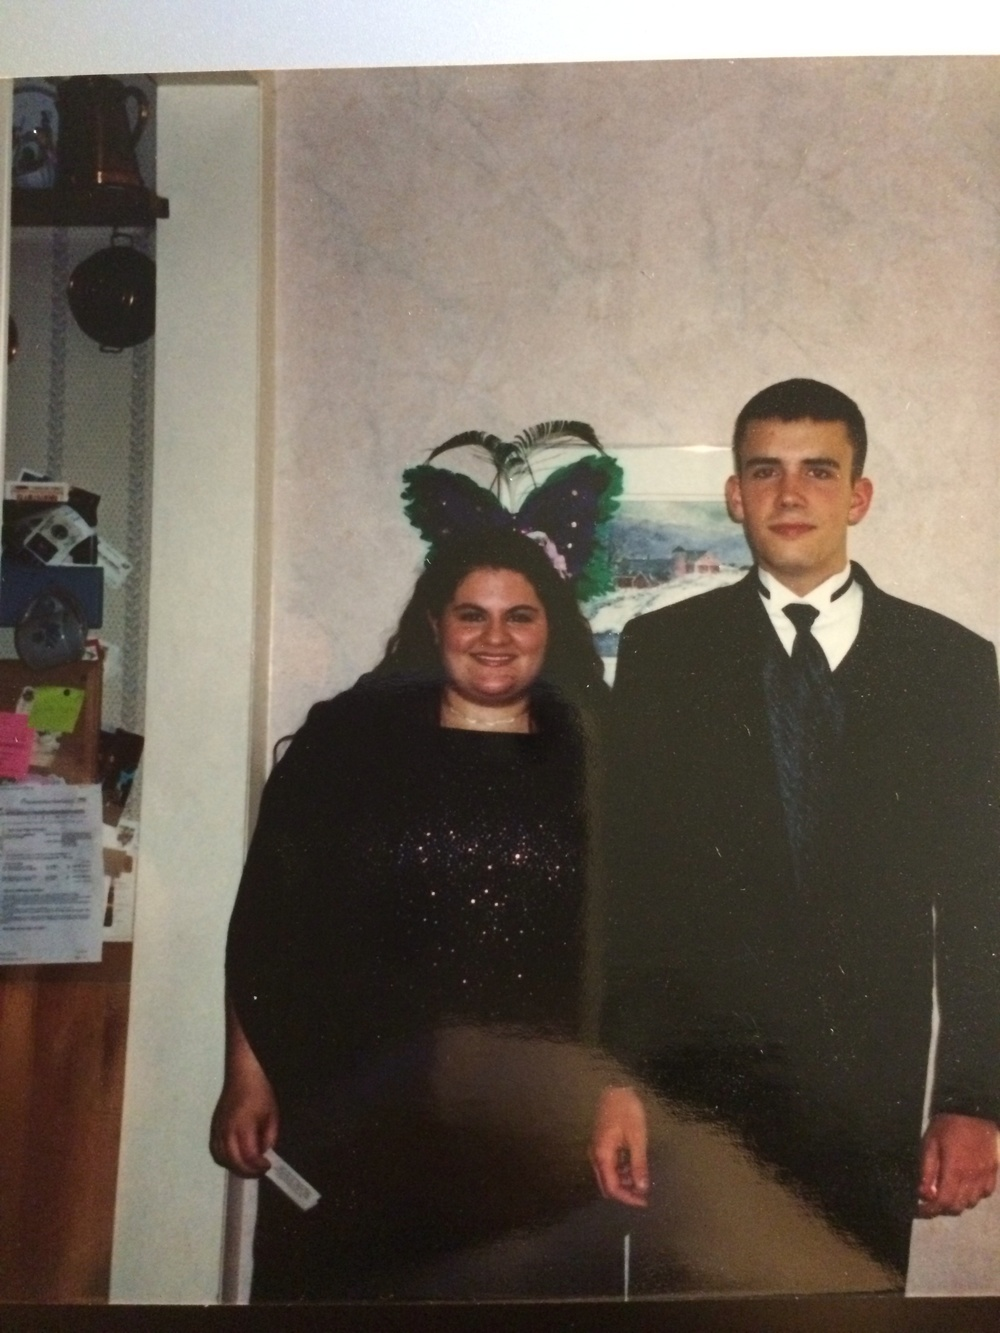 Senior Prom, finding that dress was a nightmare (age 17)